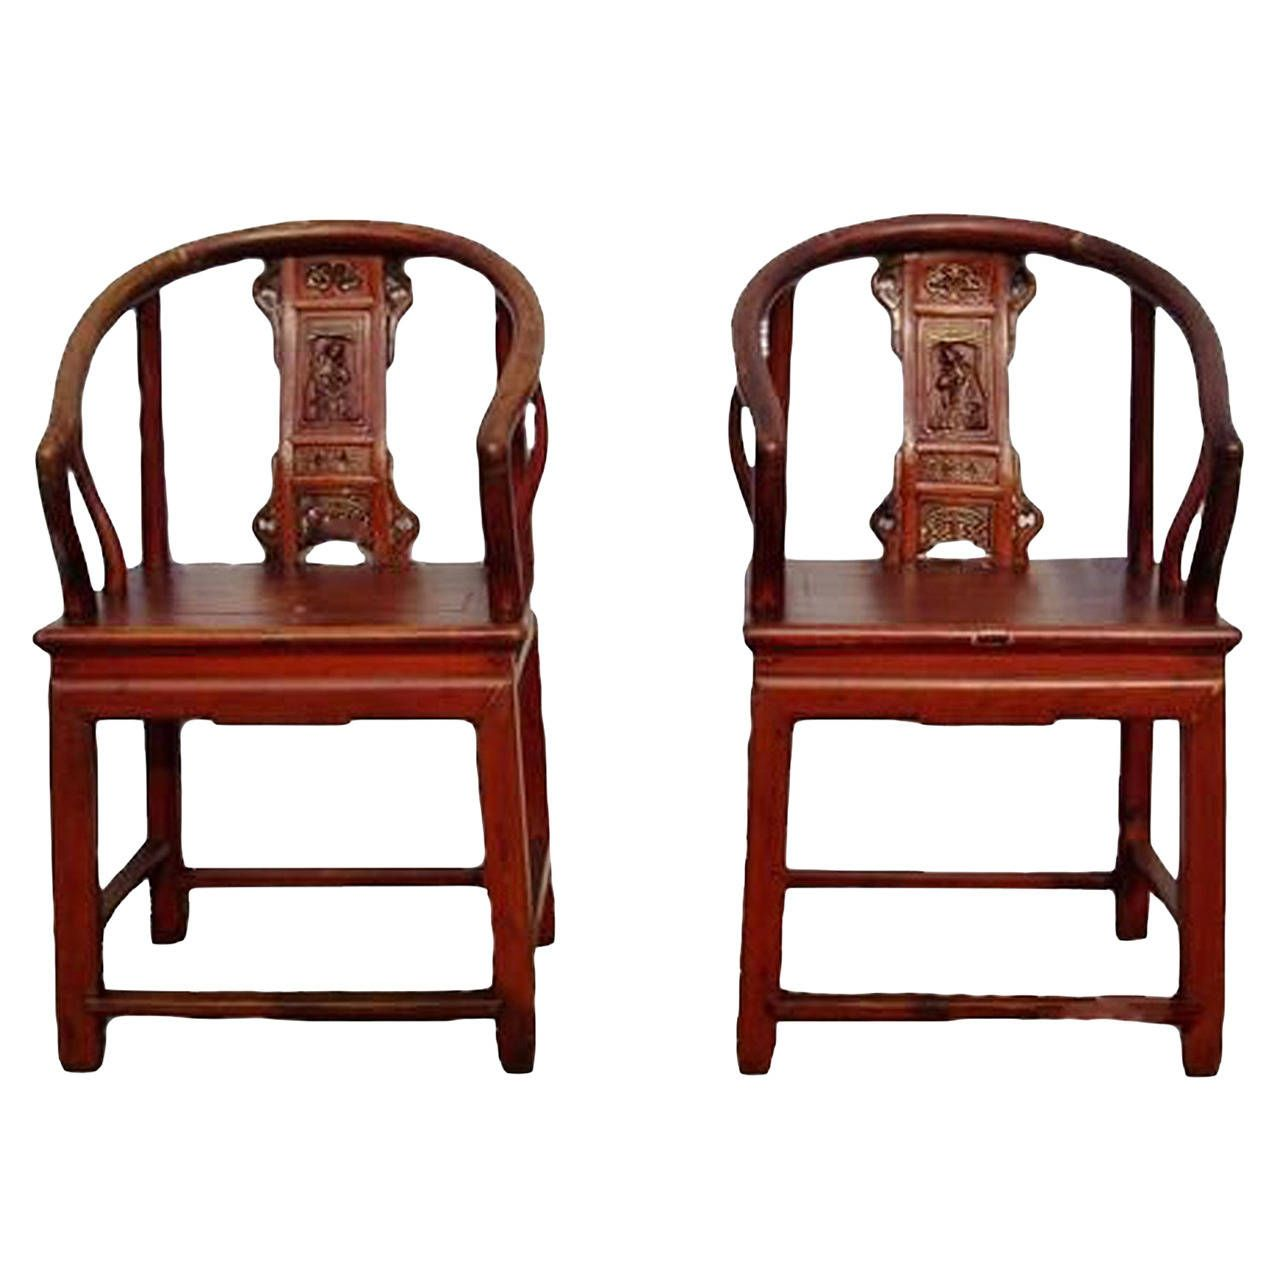 Antique princess chair - 19th Century Pair Of Antique Chinese Princess Horseshoe Chairs From A Unique Collection Of Antique